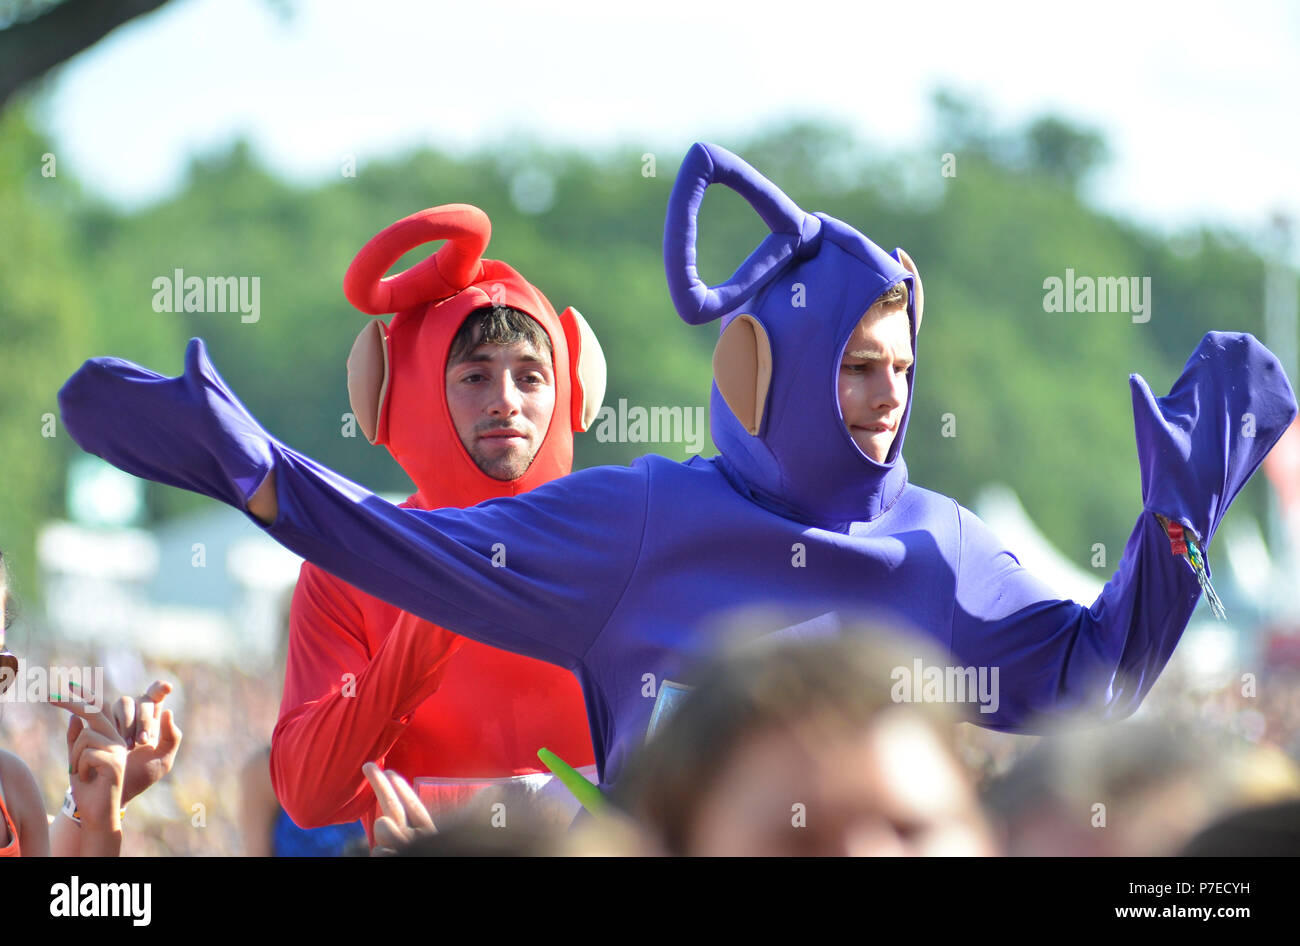 Music Fans Waving Hands in the Air at a Music Festival - Stock Image